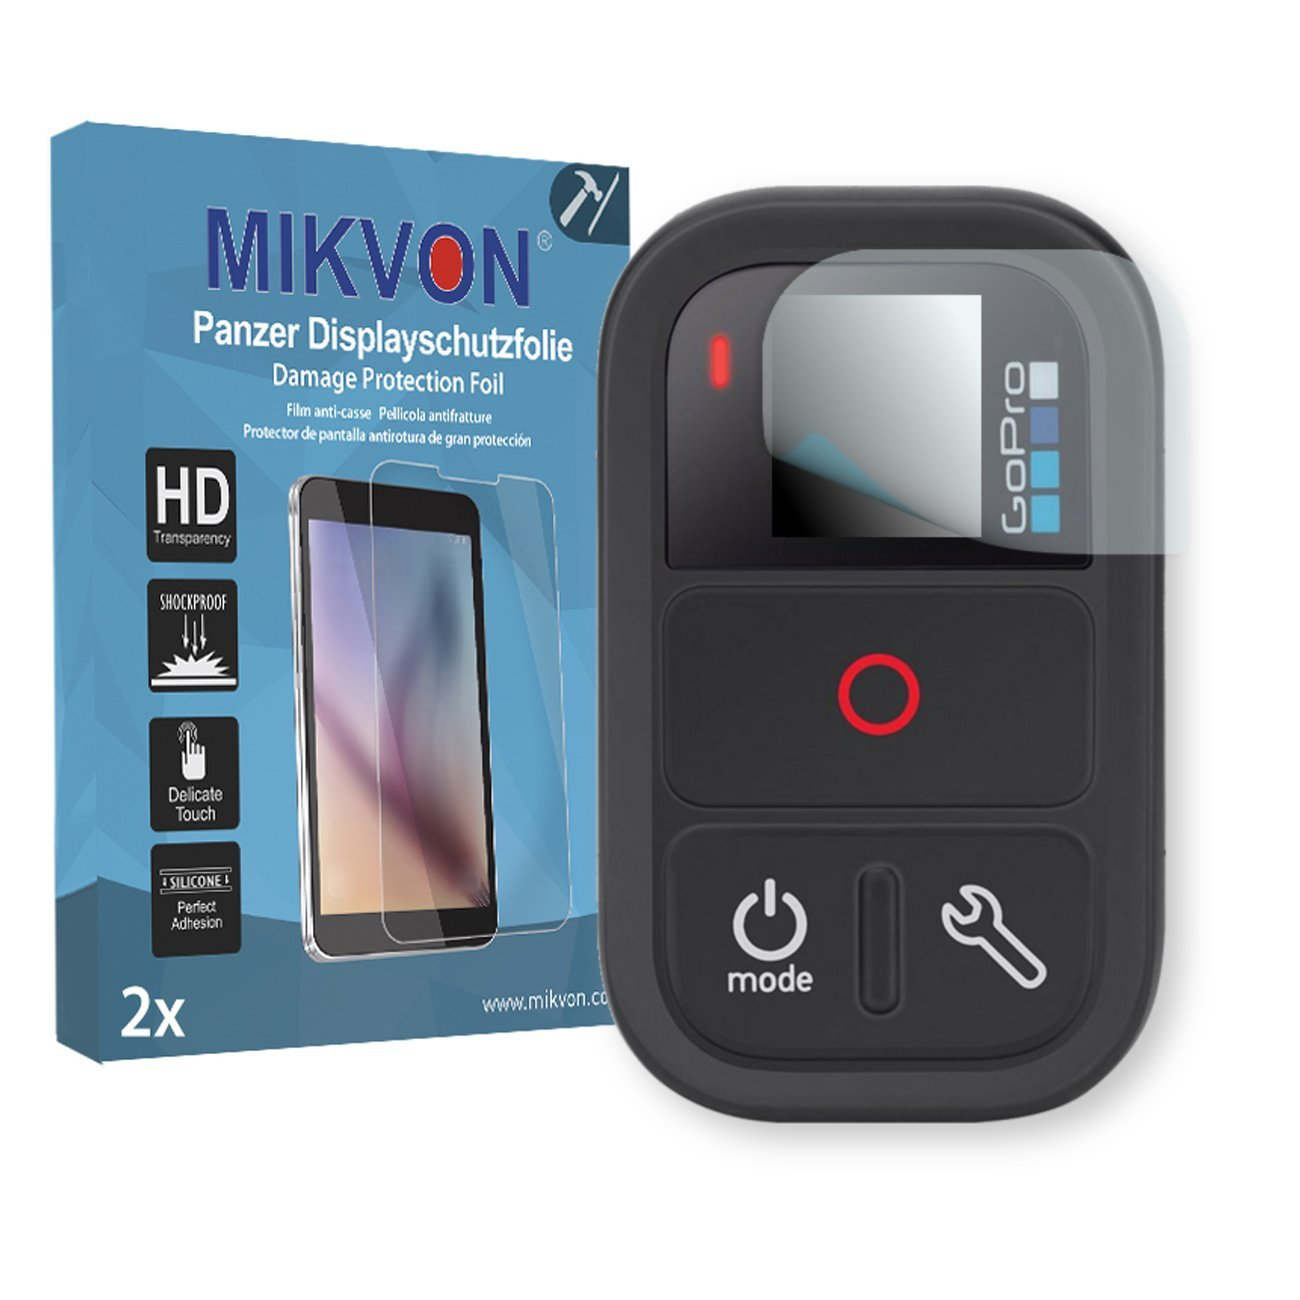 MIKVON 2X Armor Screen Protector for GoPro Remote Screen Fracture Protection Film - Retail Package with Accessories